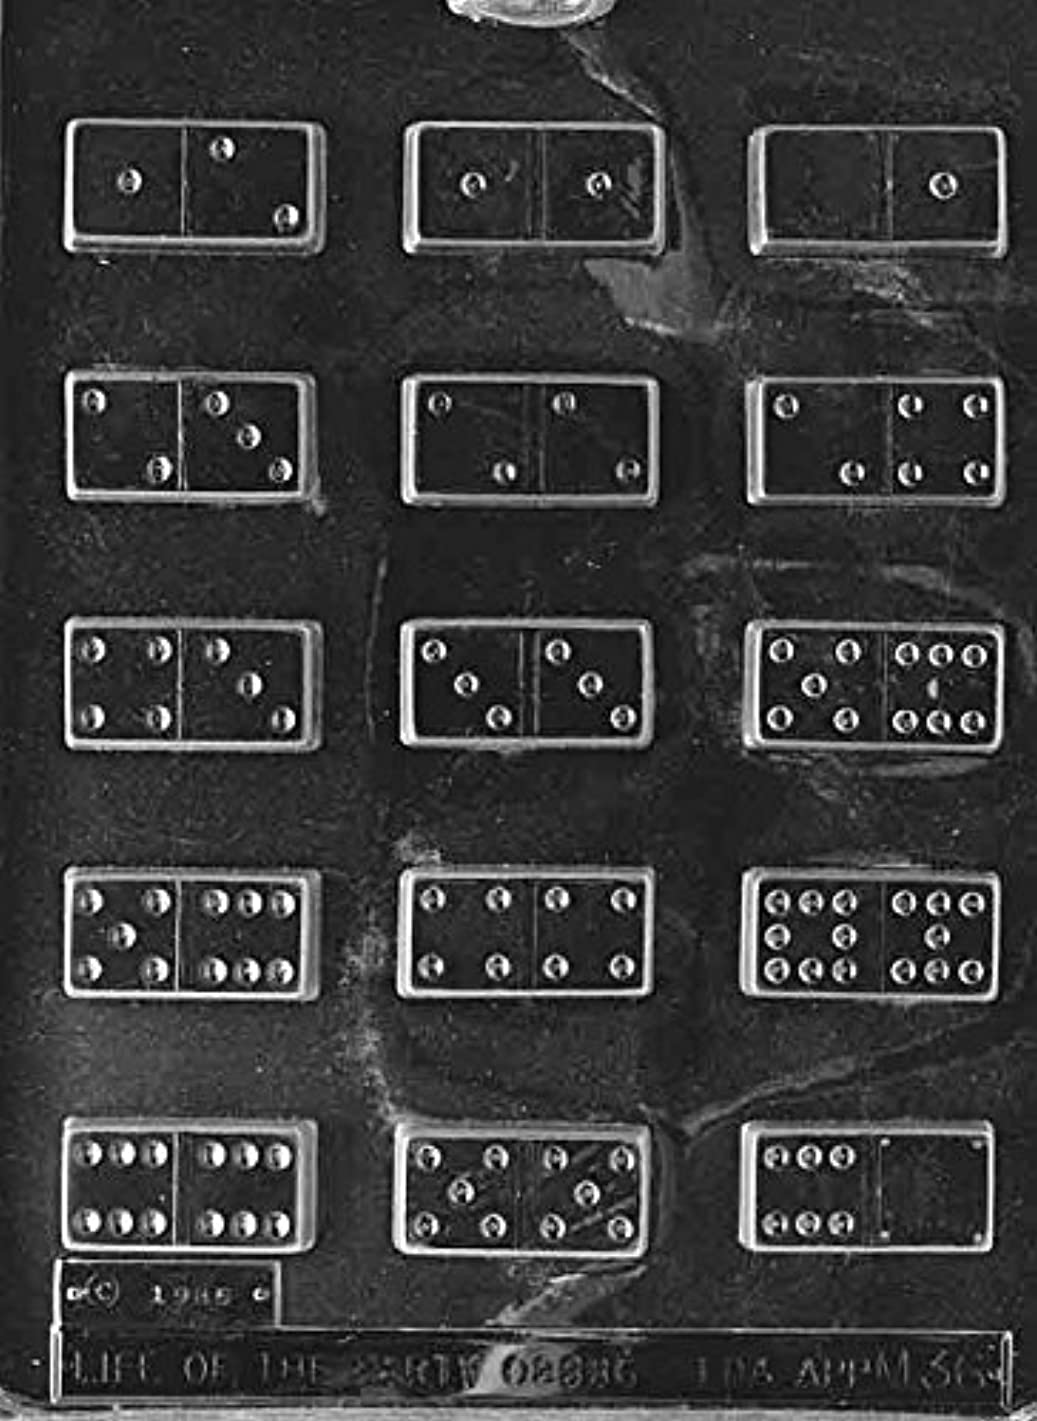 Dominoes Chocolate Mold - M036 - Includes Melting & Chocolate Molding Instructions